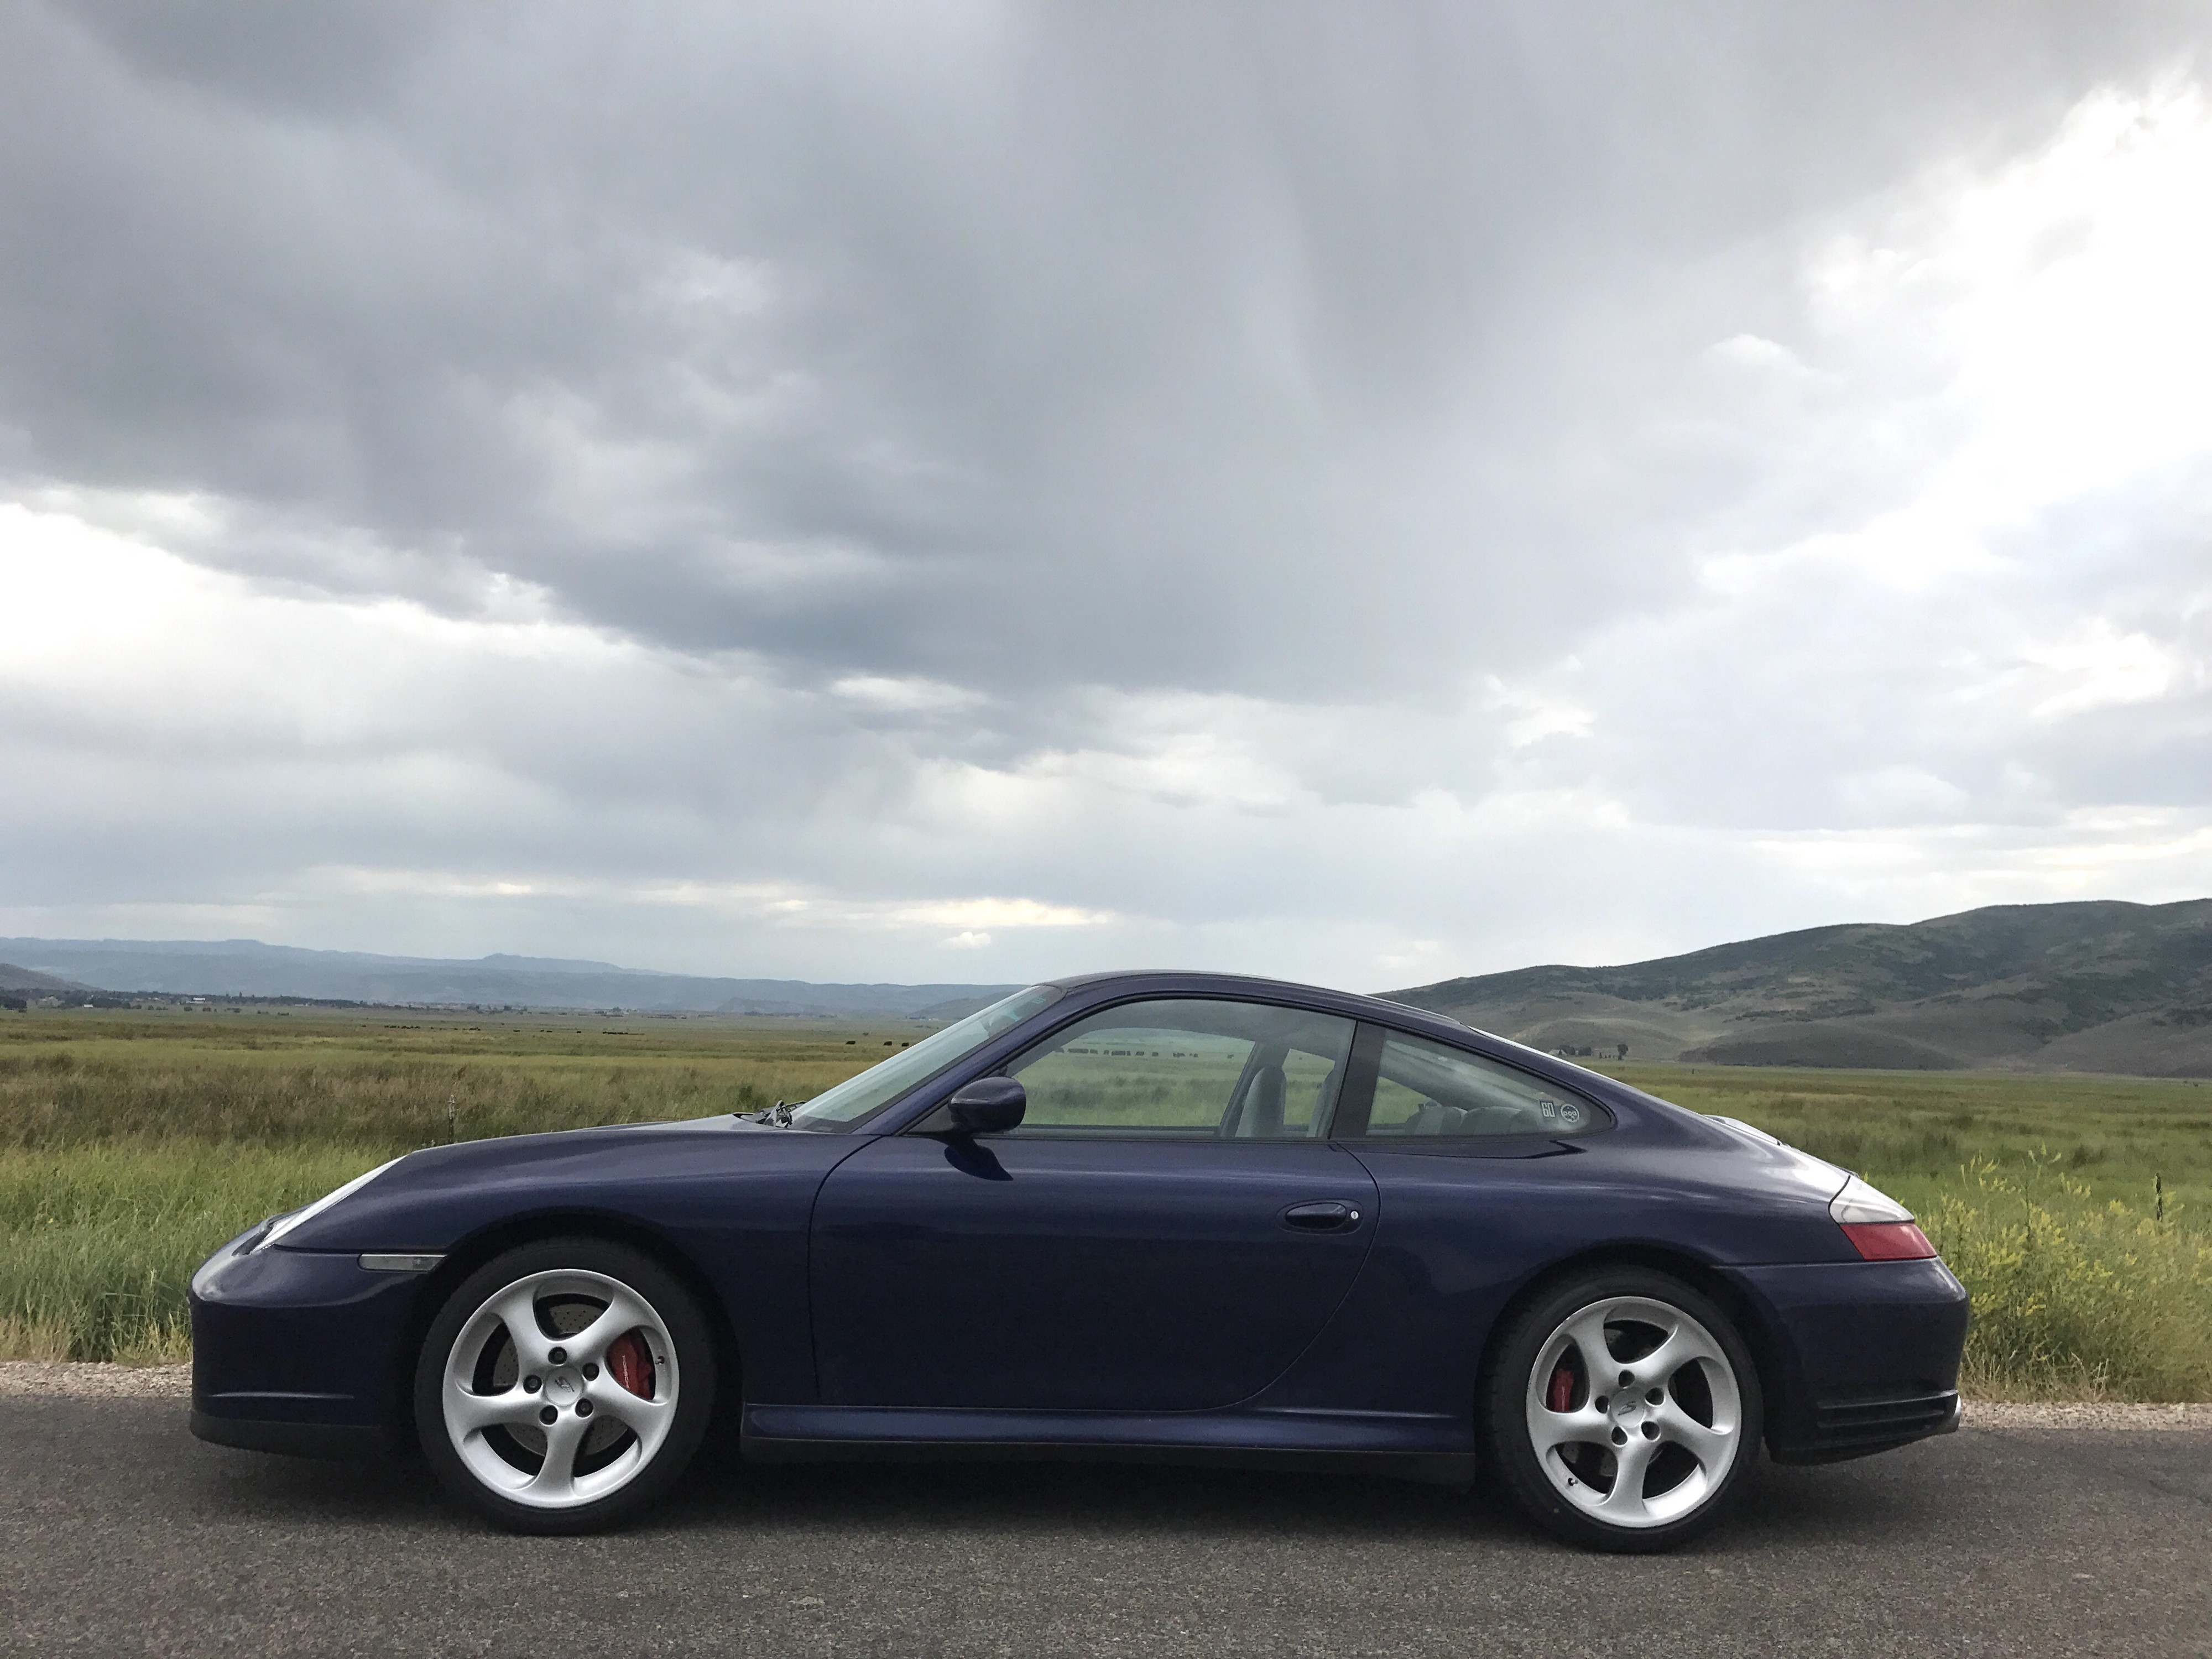 I Bought A Porsche 911 C4s For The Price Of A New Gti